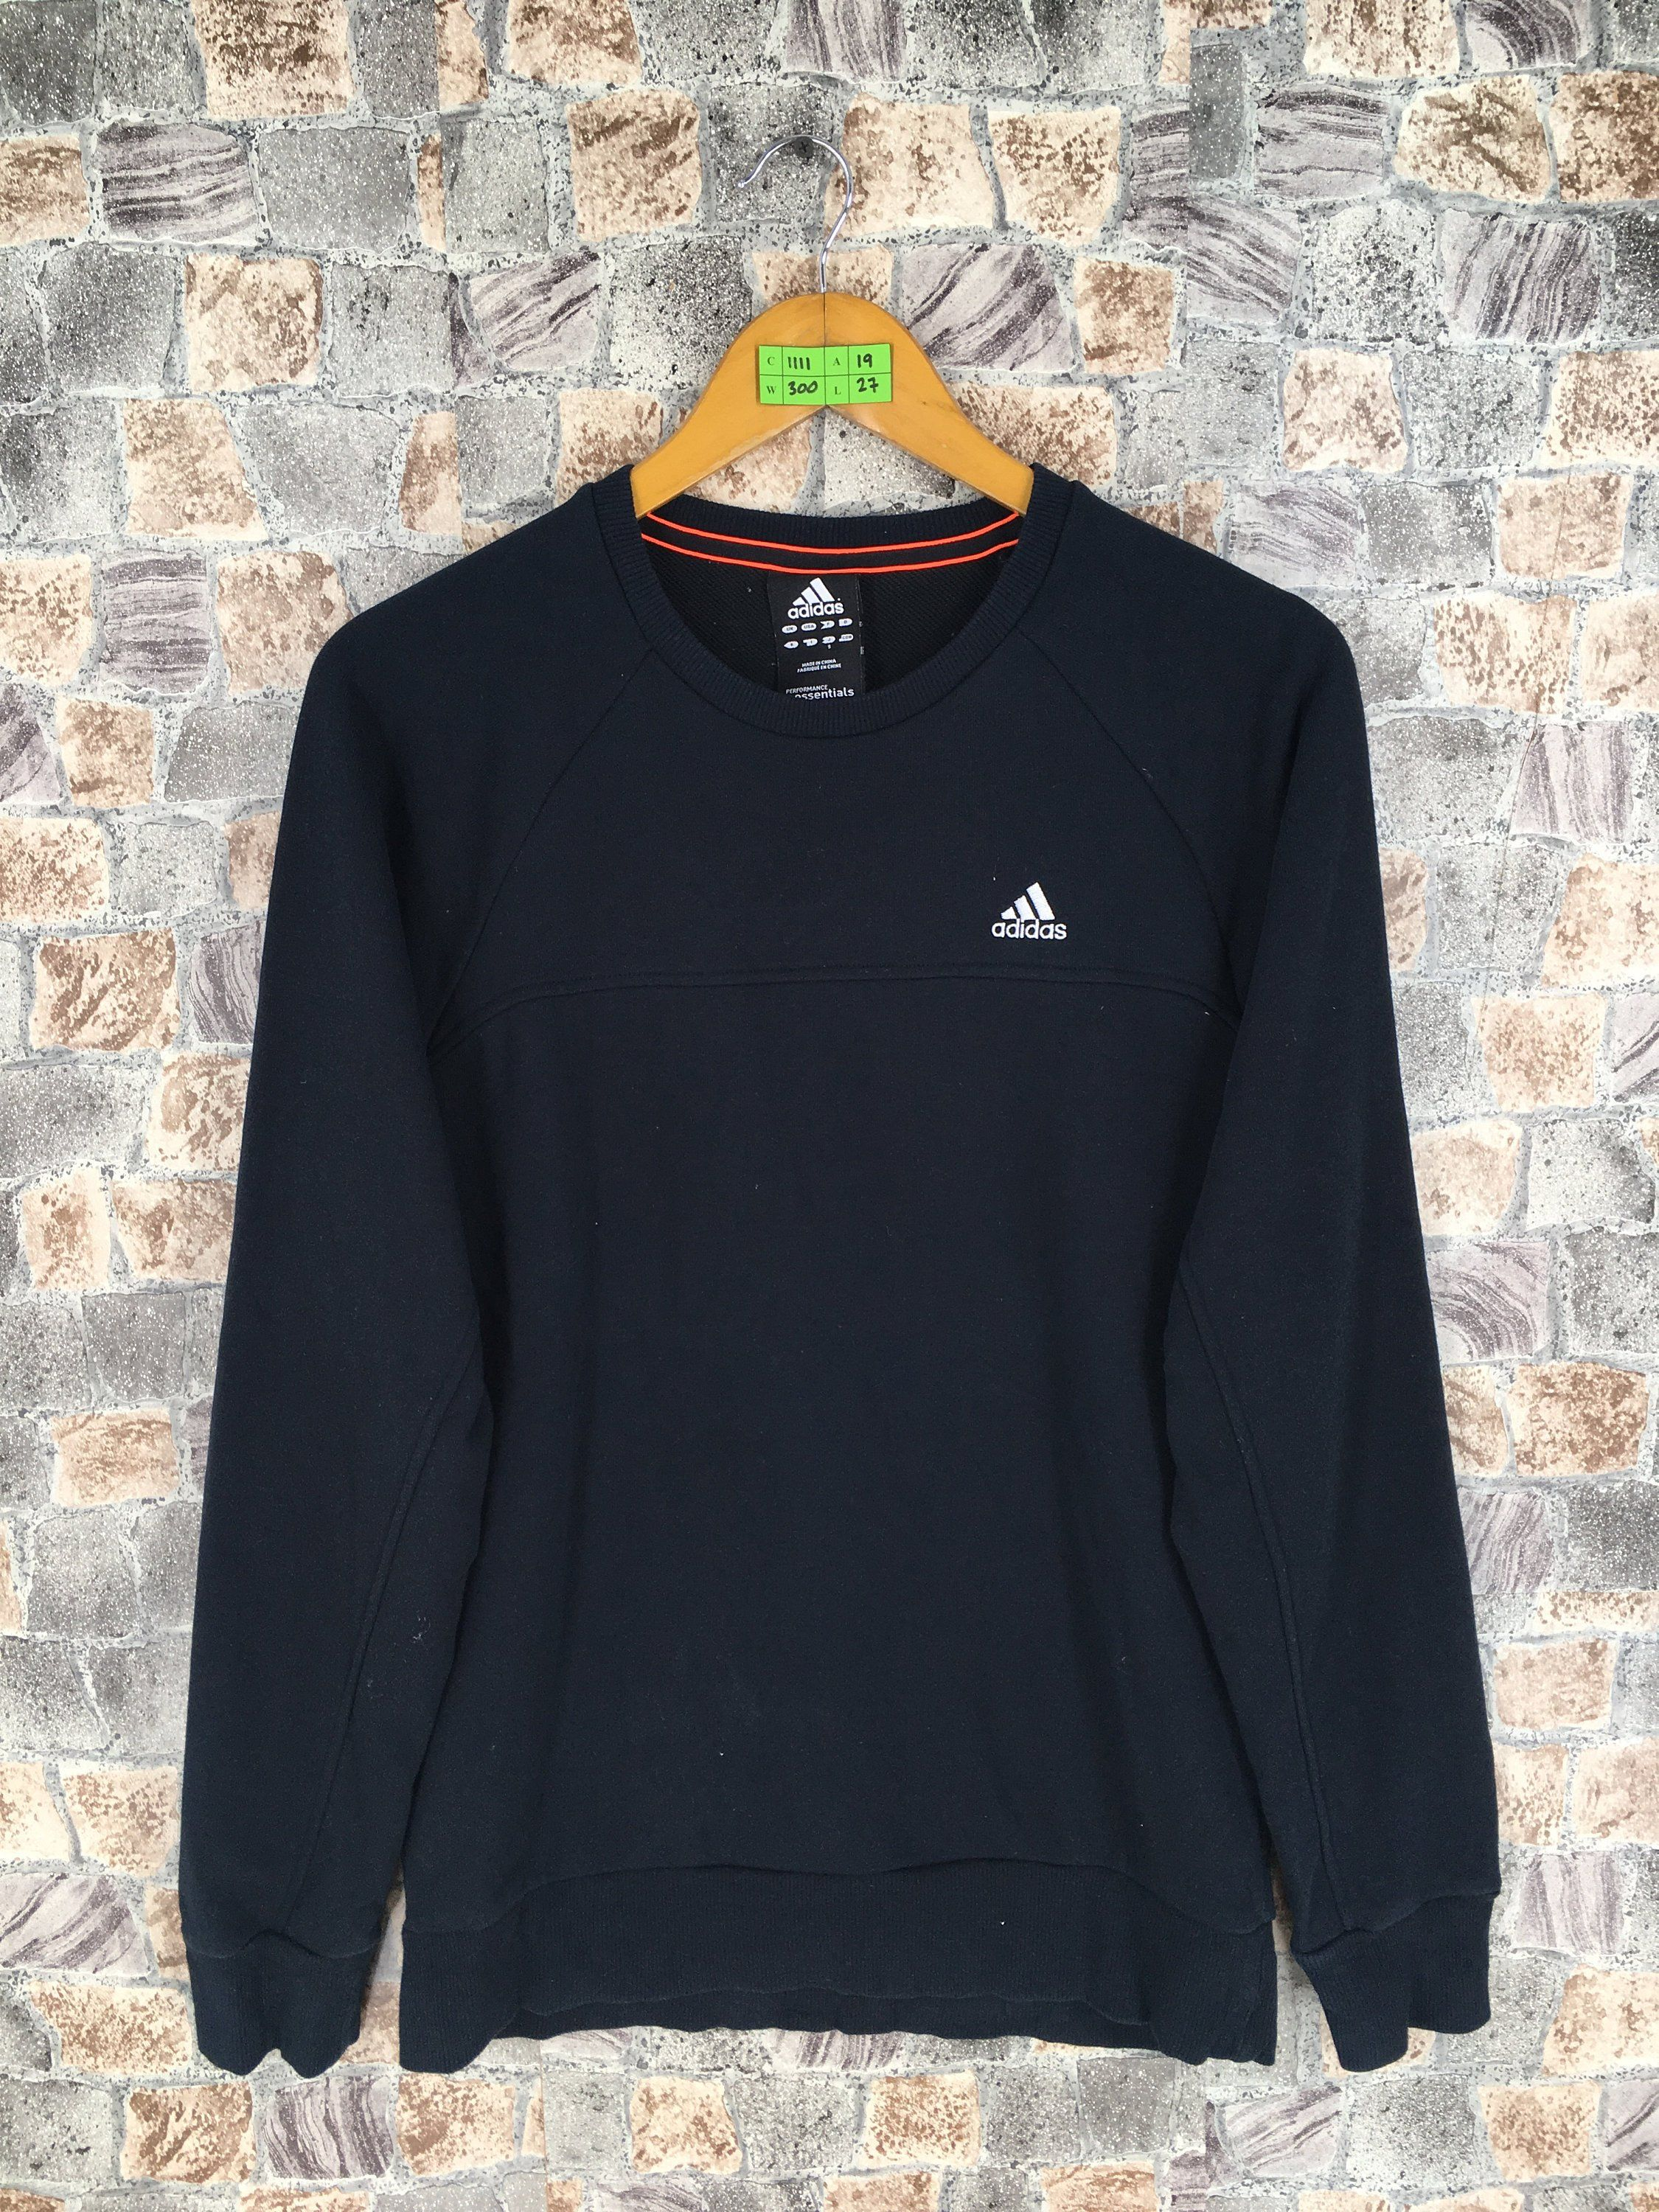 ADIDAS Equipment Pullover Sweater Small Vintage 90's Adidas